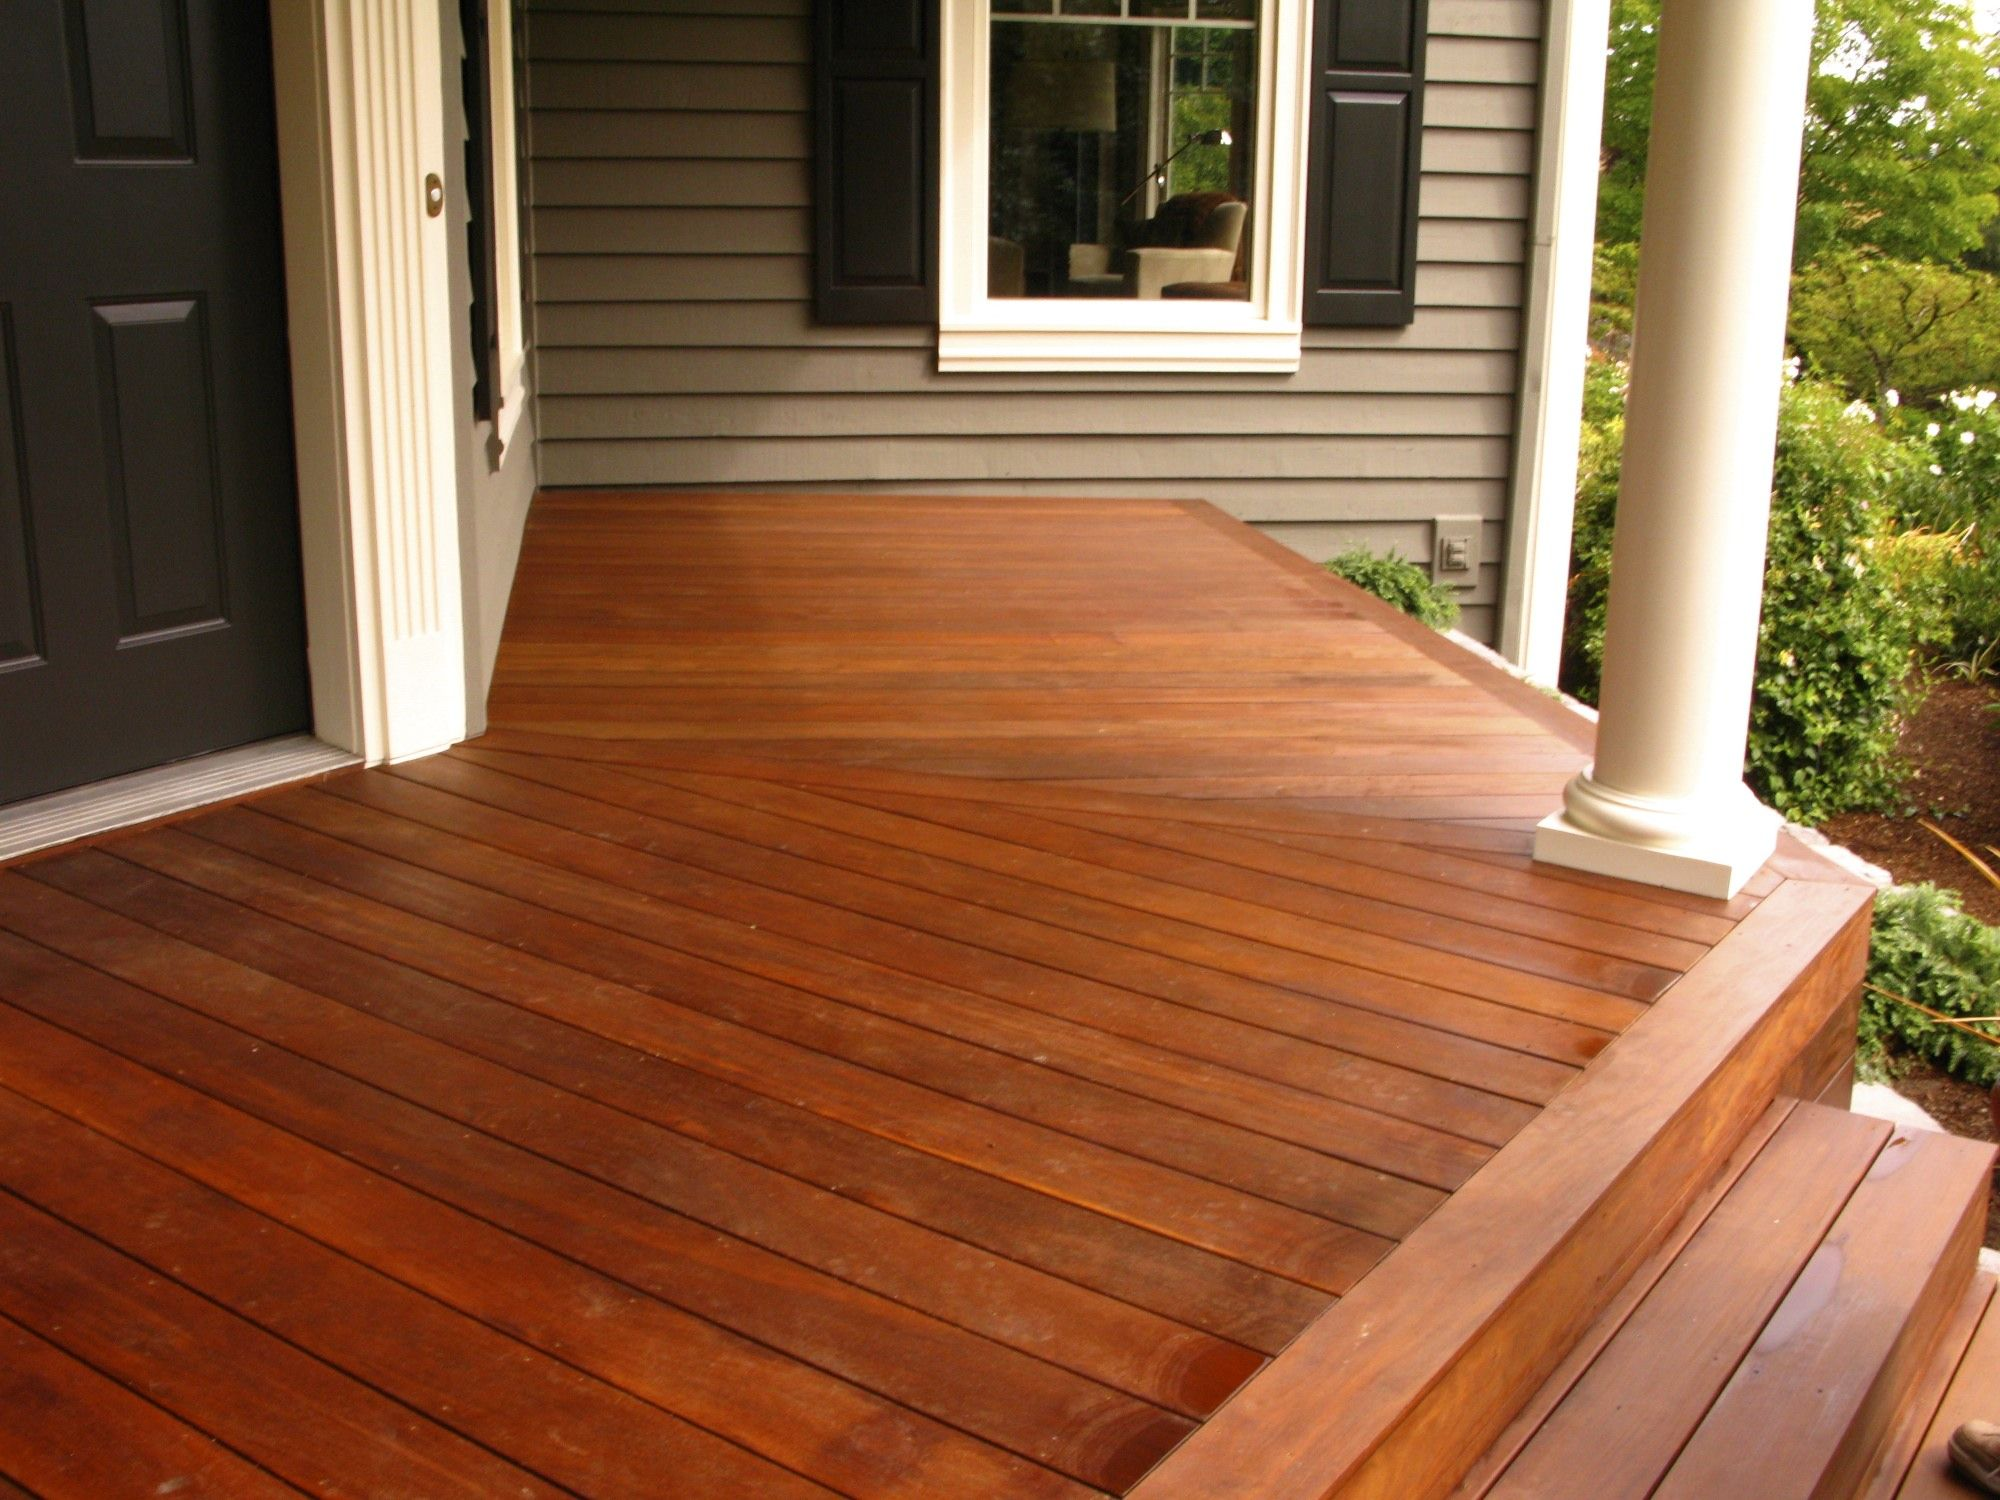 Home Depot Cedar Deck Boards Stained Cedar Deck Color Deck Cedar Deck Deck Deck Colors